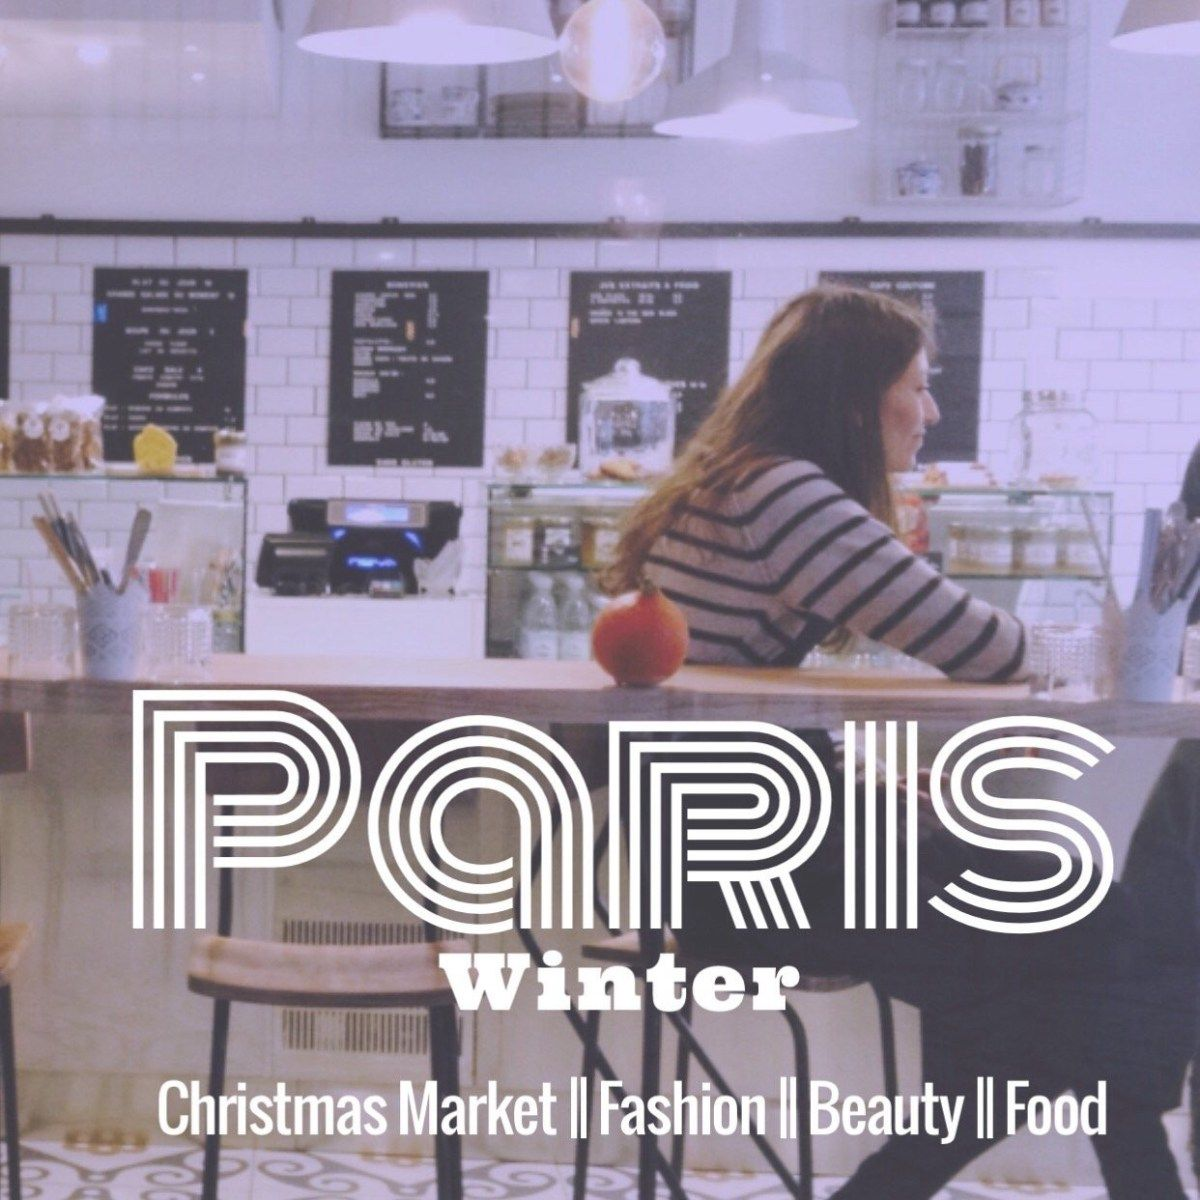 Winter shopping in Paris doesn't have to be a drab filled with the typical expensive gifts, or shopping anxiety. We've found some cool shops and spots to share with you. A little list …